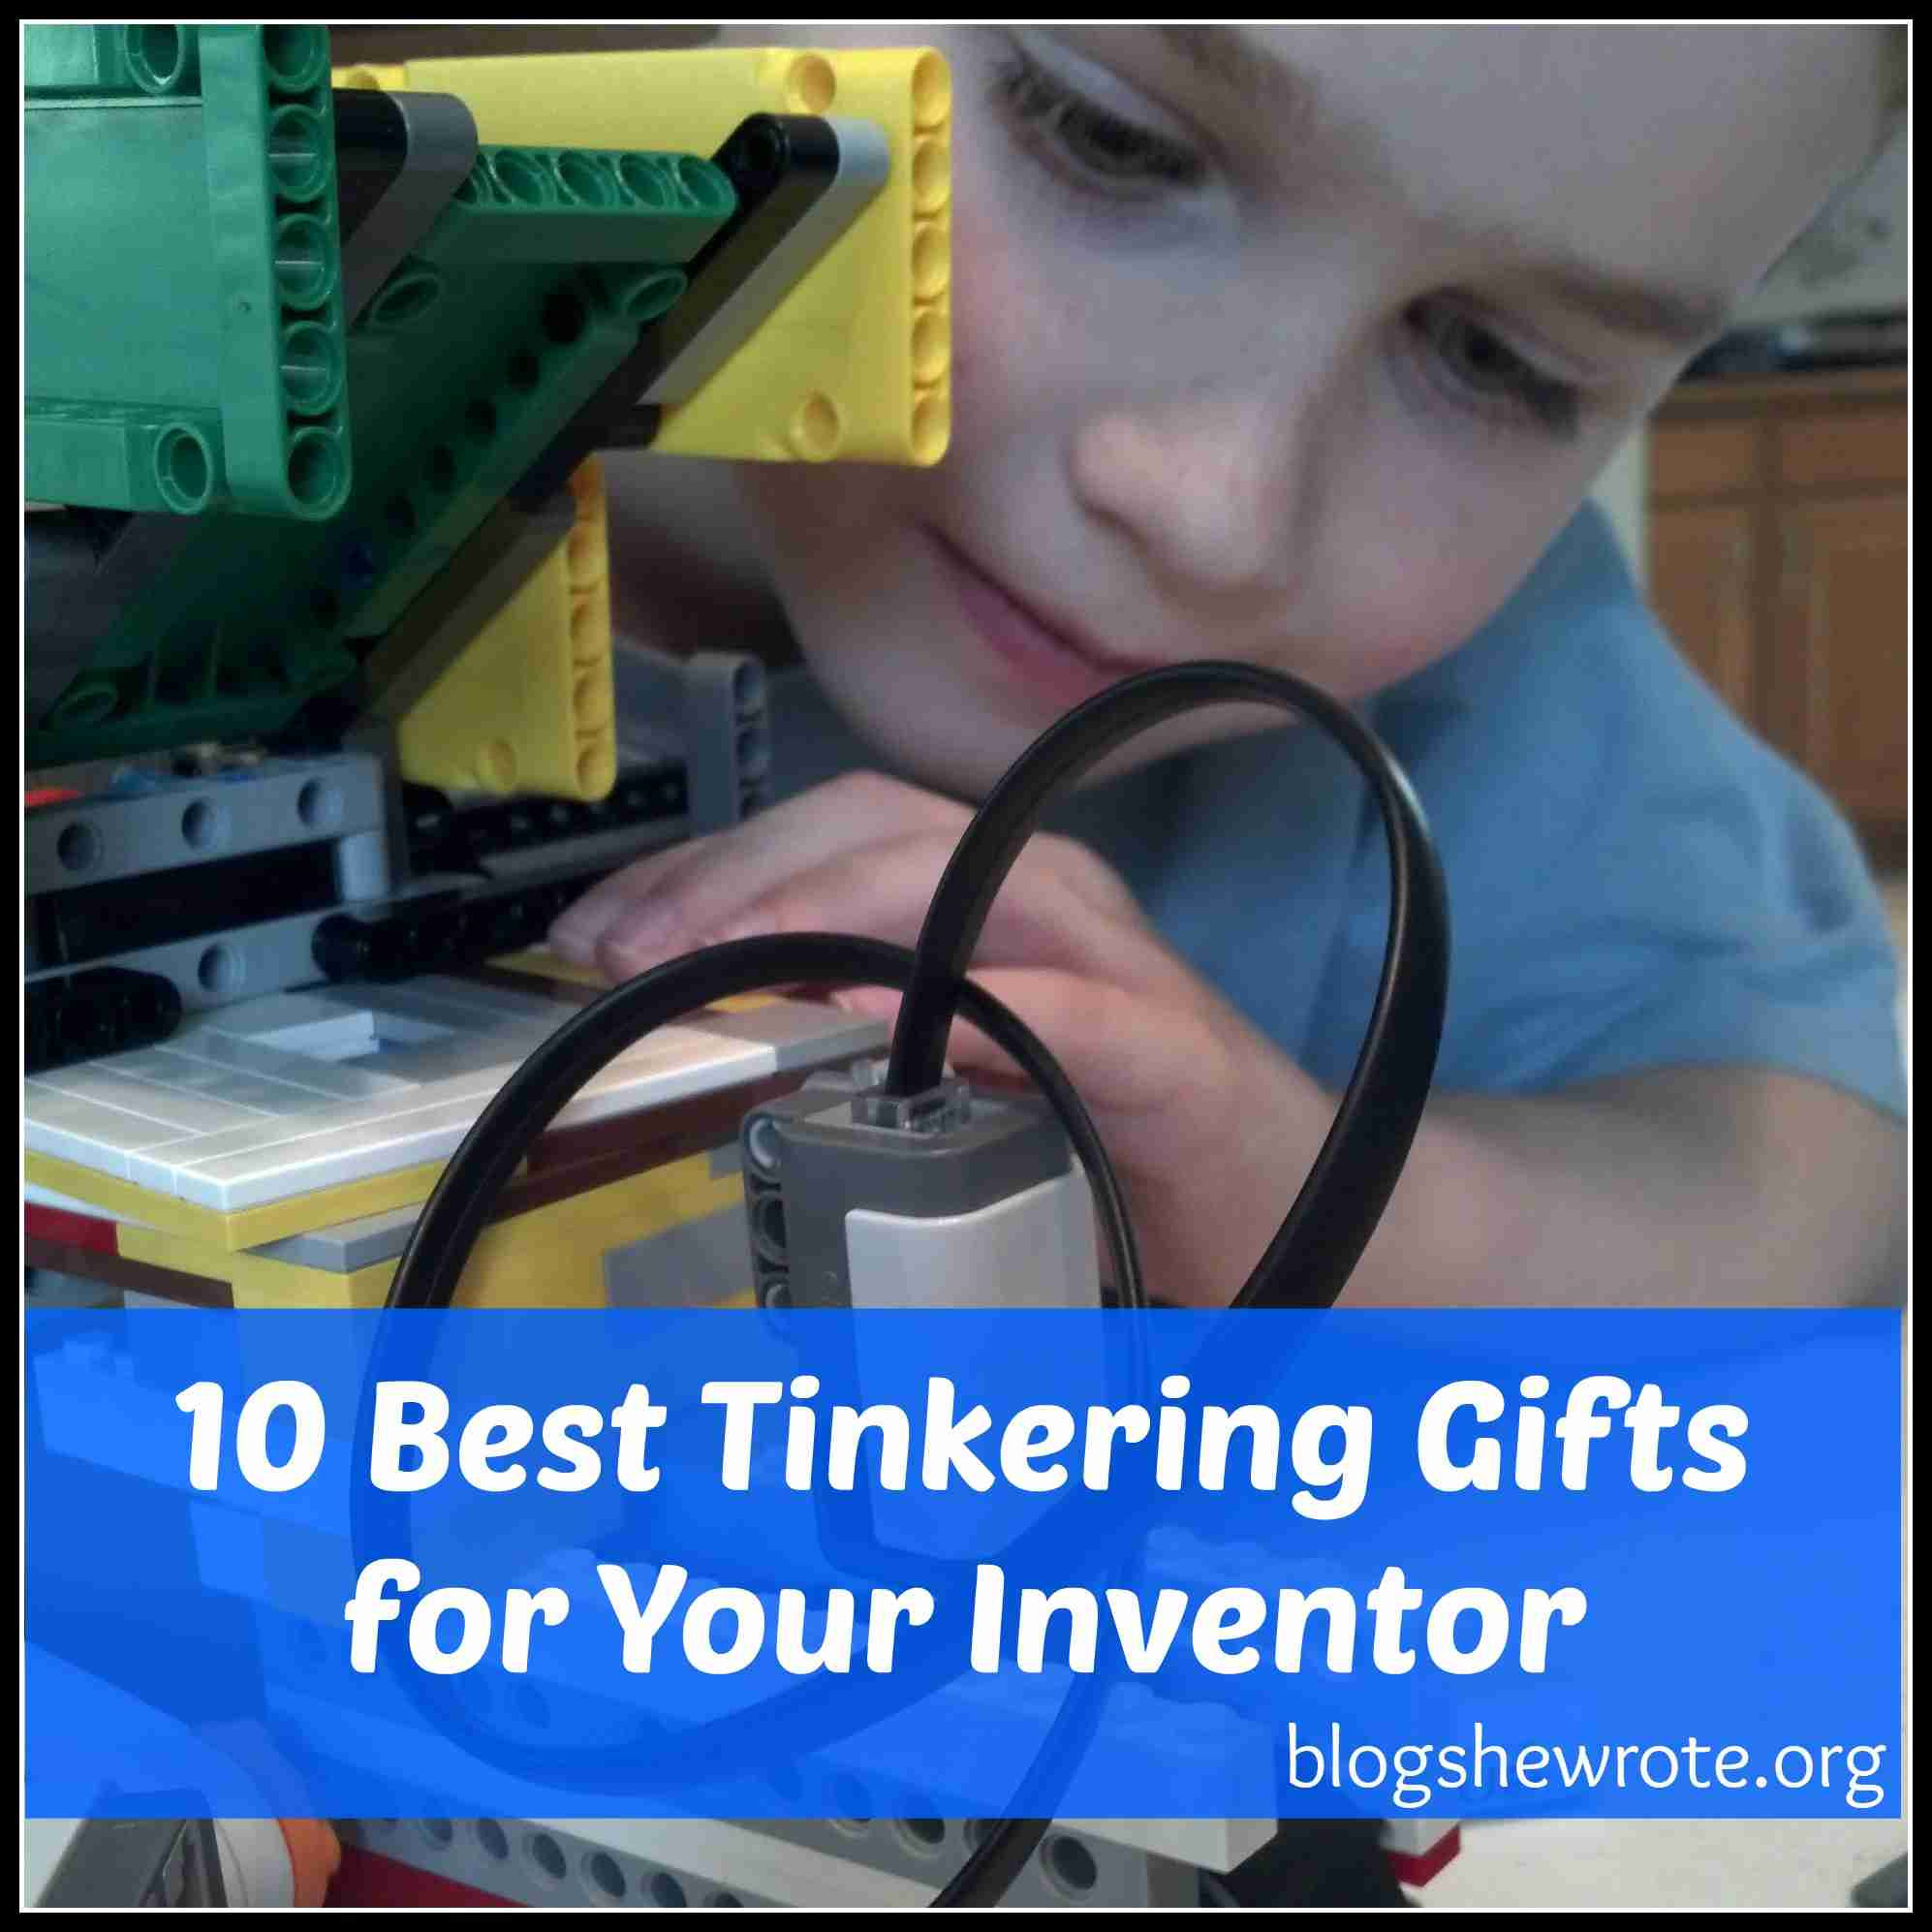 10 Best Tinkering Gifts for Your Inventor